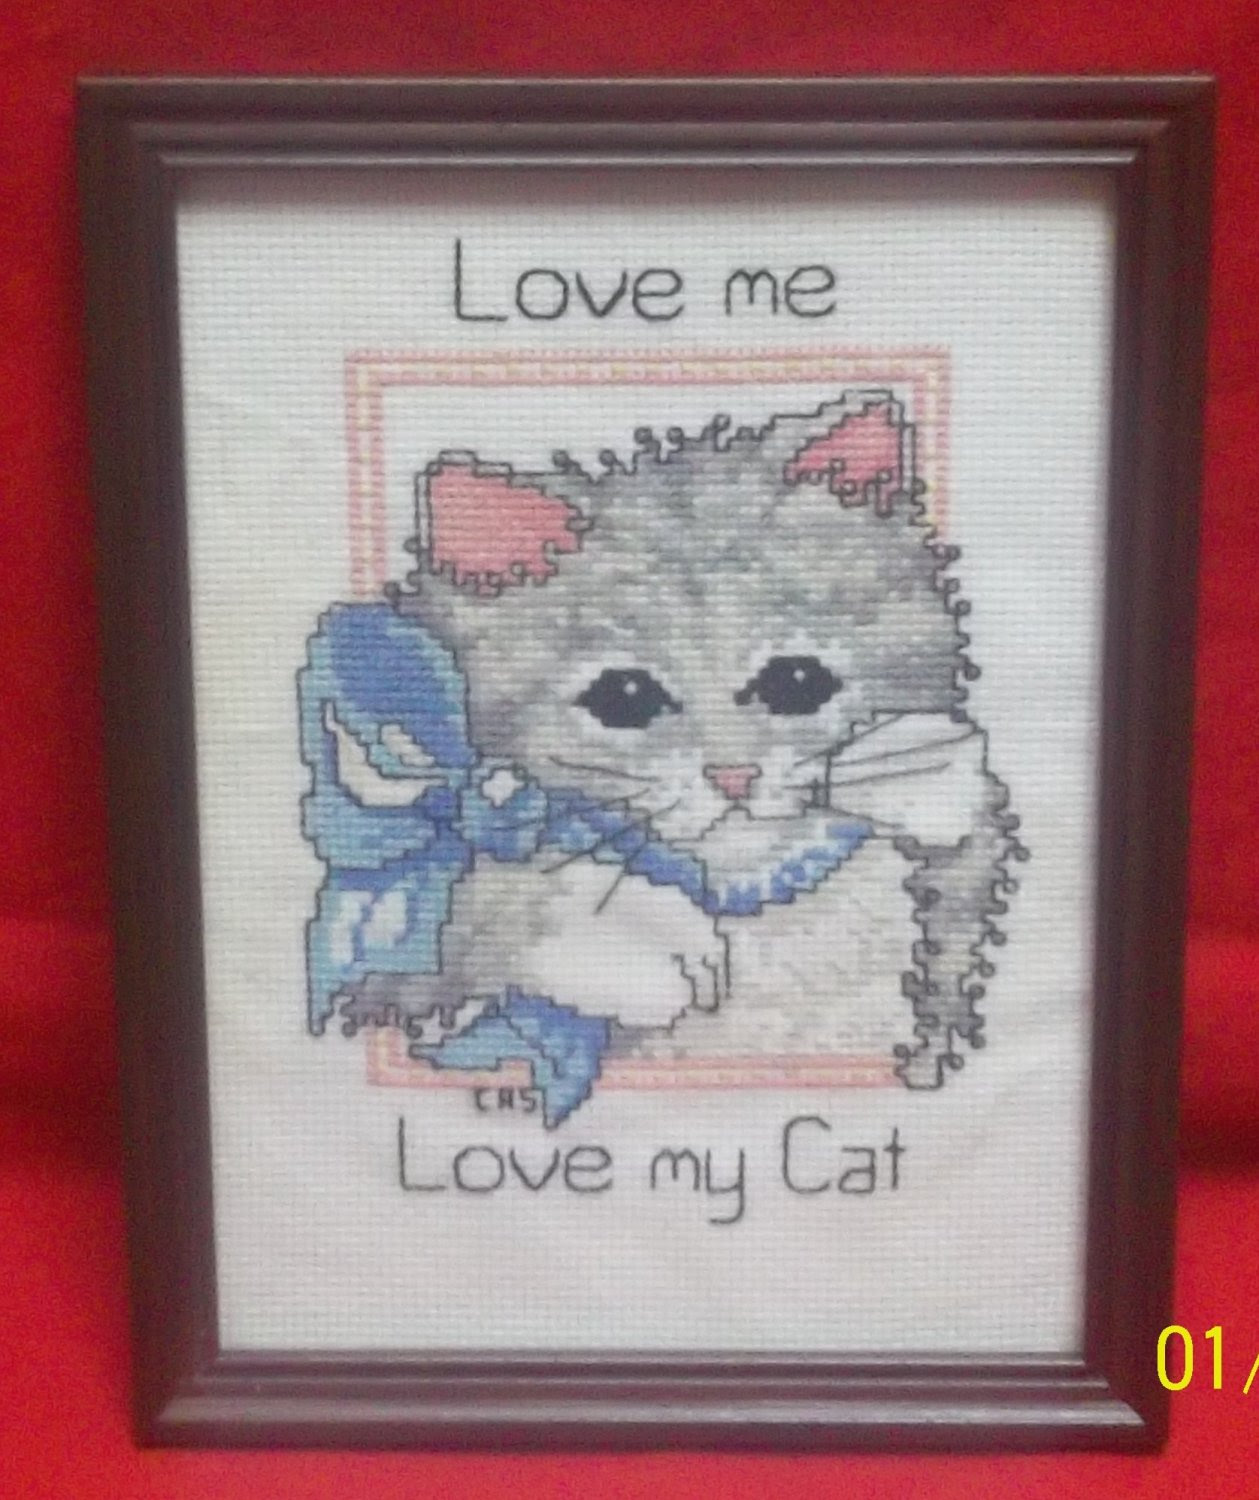 Love Me Love My Cat Framed Cross Stitch Sampler Picture Cutewell